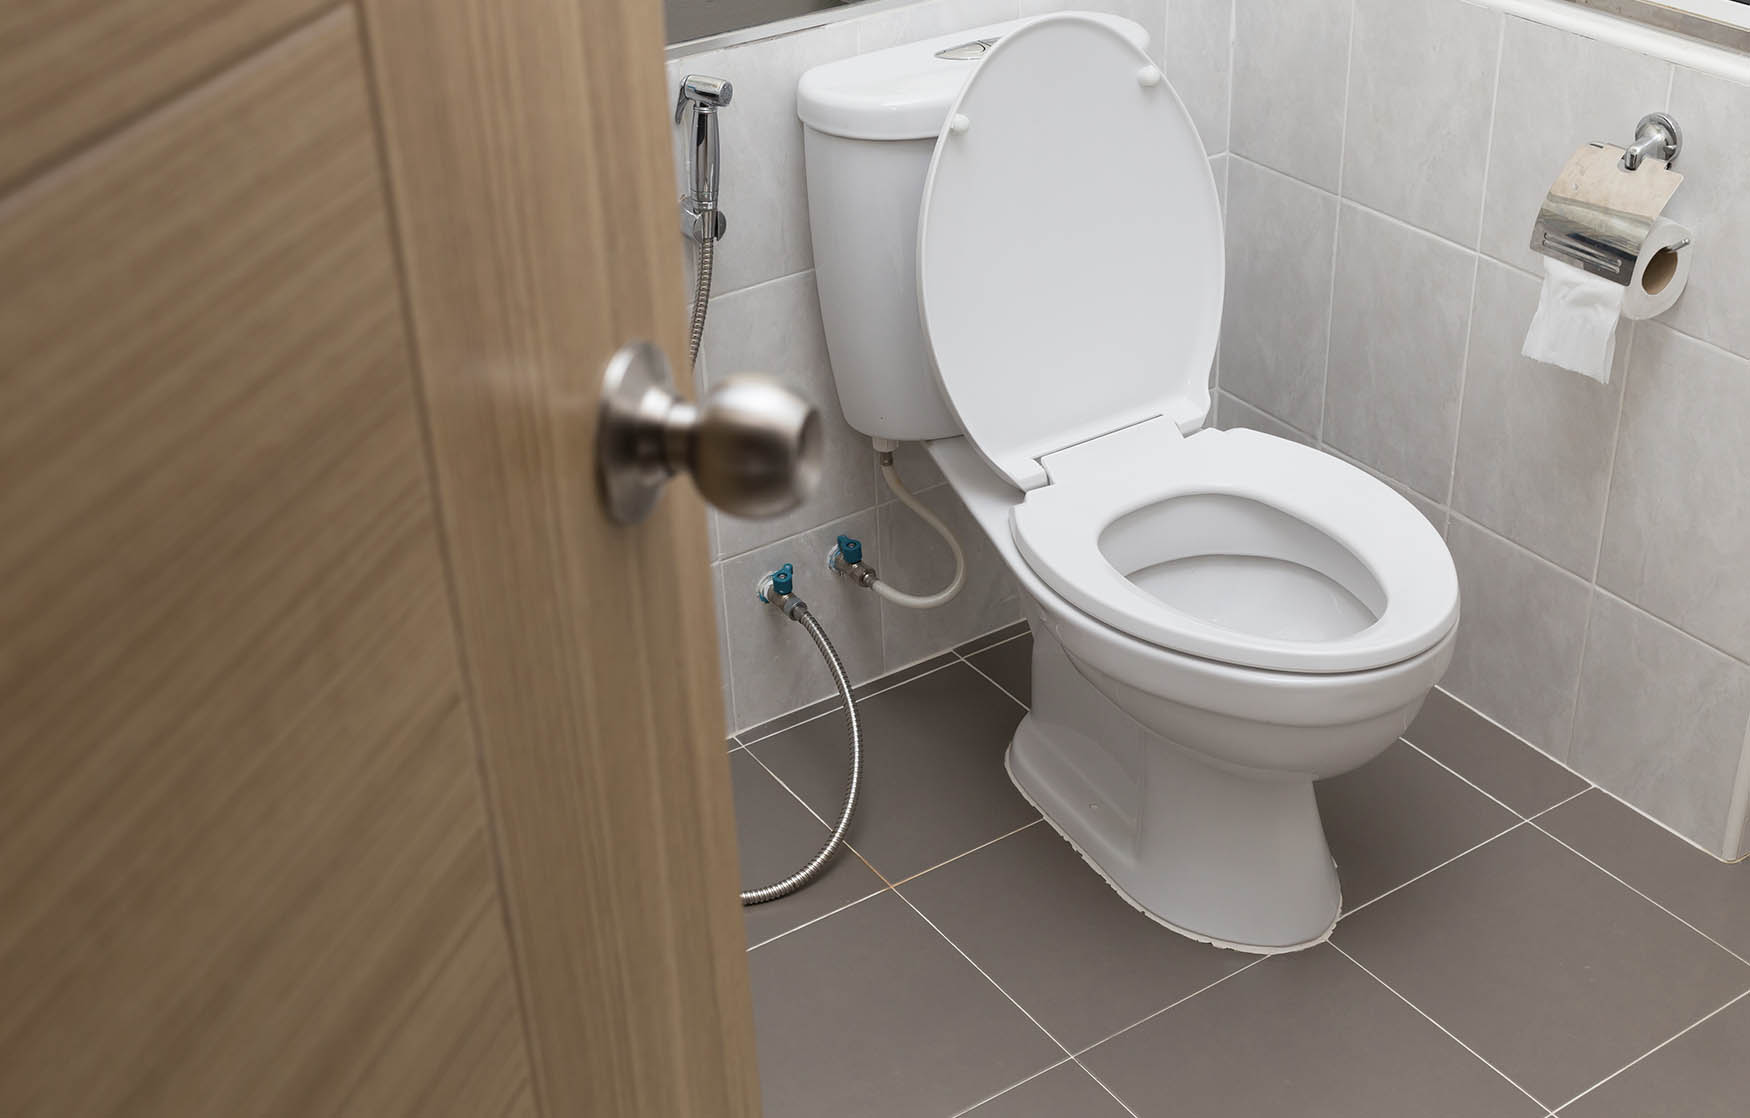 Can you guess the dirtiest thing in your bathroom? (Hint: It's not the toilet)